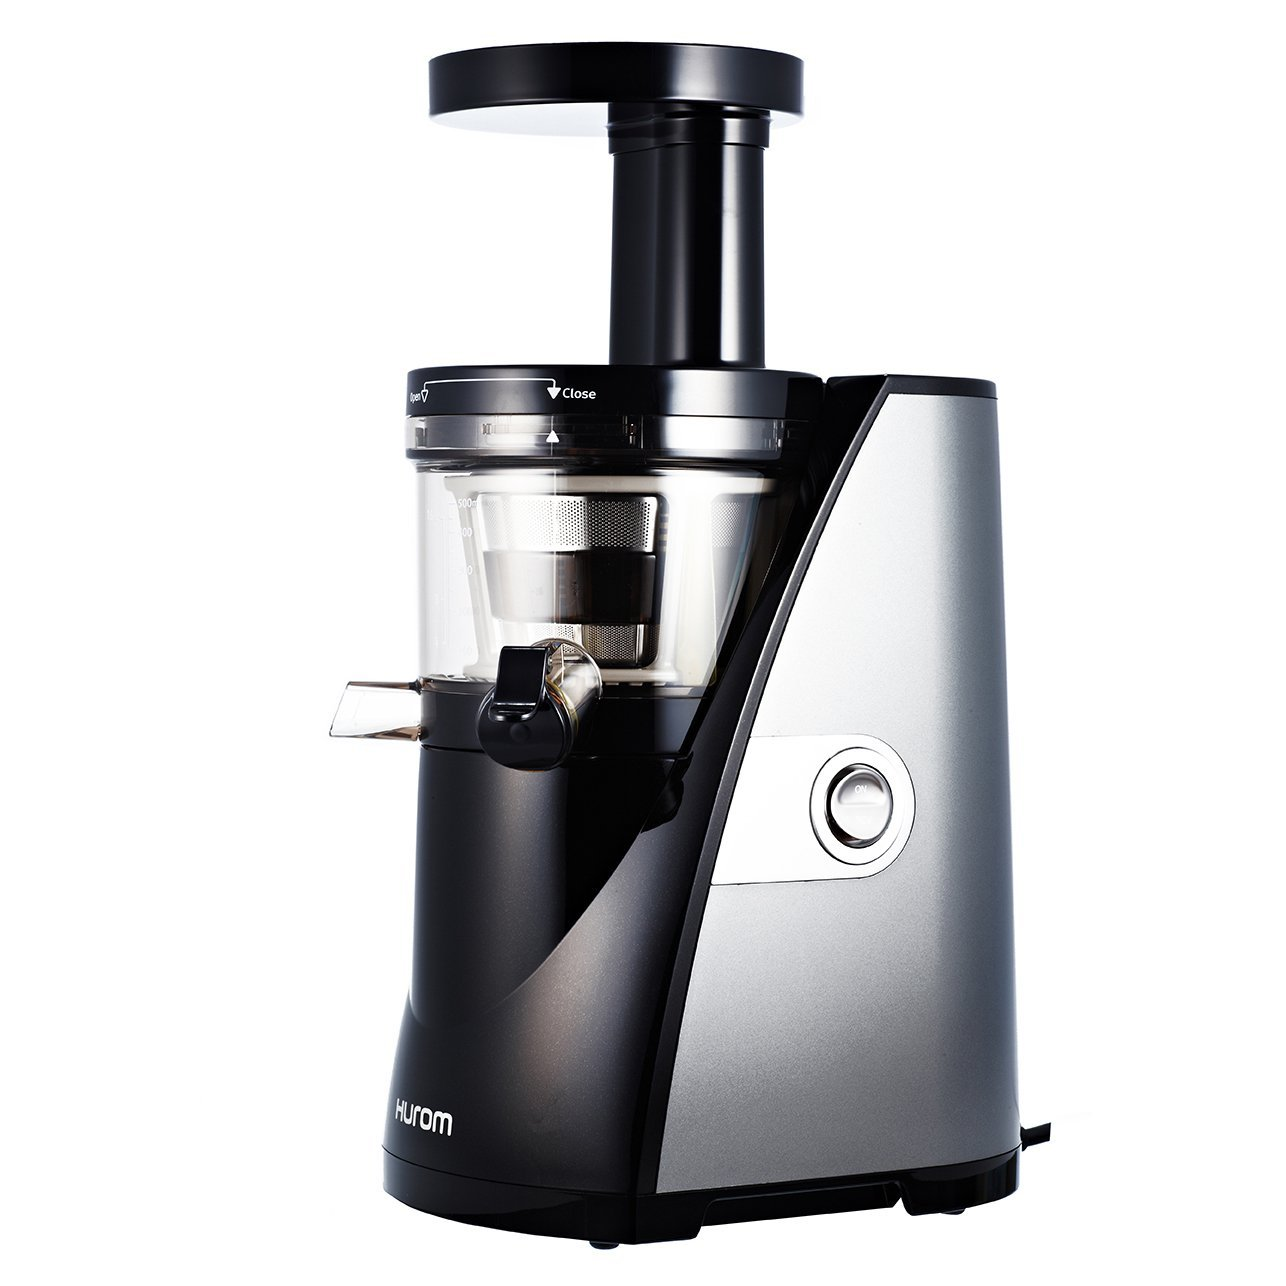 The Best Hurom Slow Juicer : 5 Best Hurom Juicer Reviews UPDATED: 2018 The Home Savant